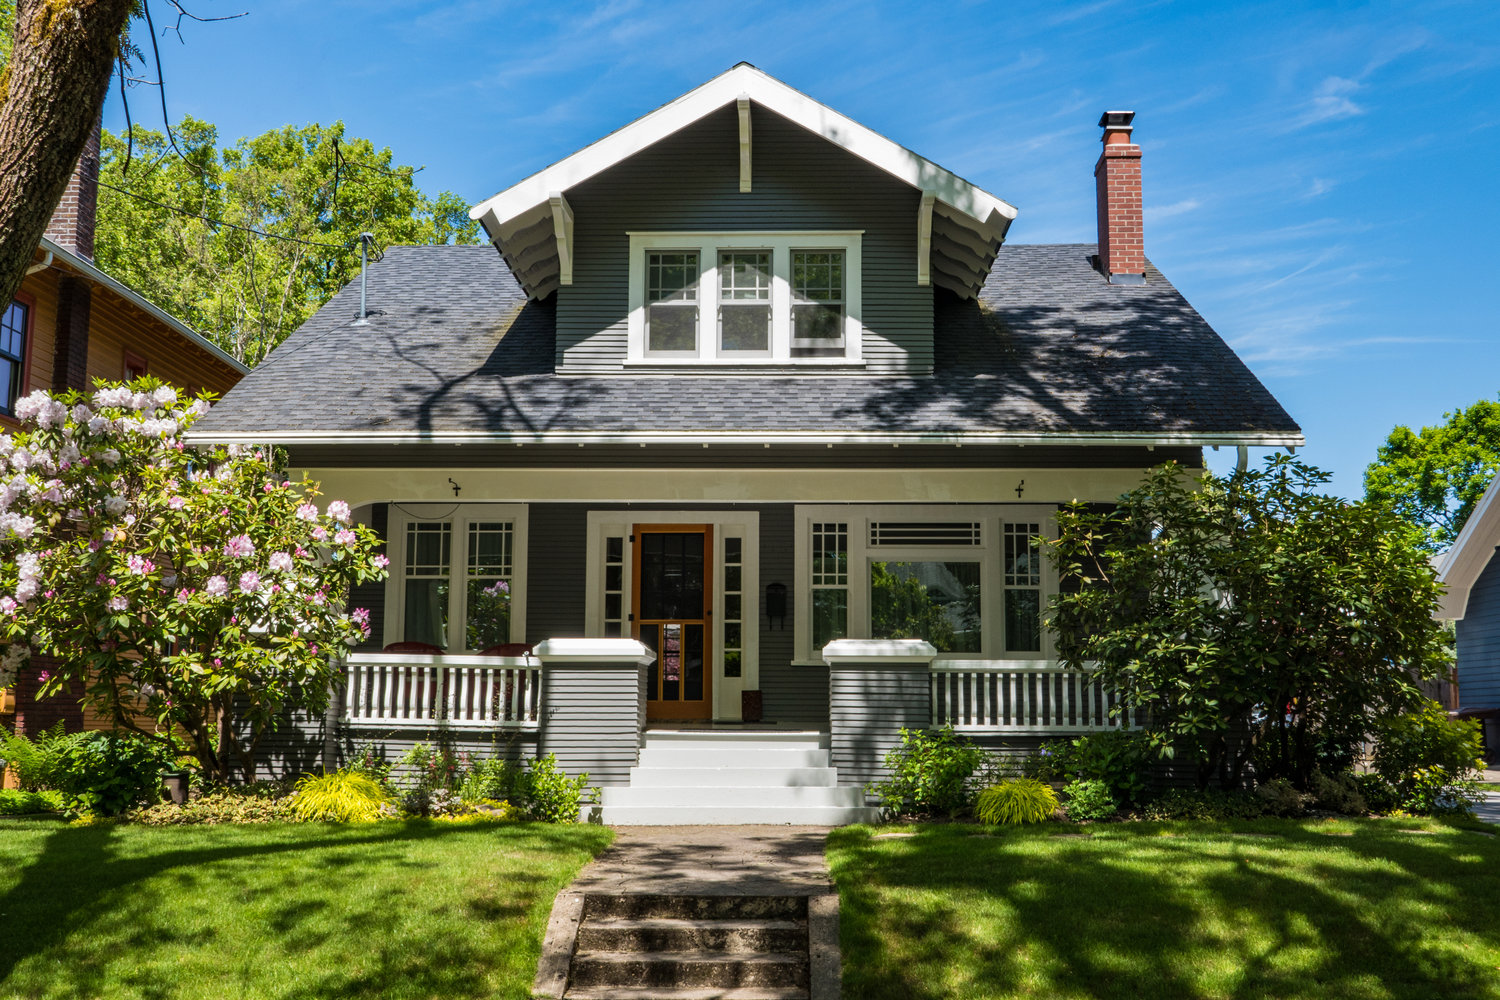 How To Keep Your House Cool And Improve Your Home Energy Score